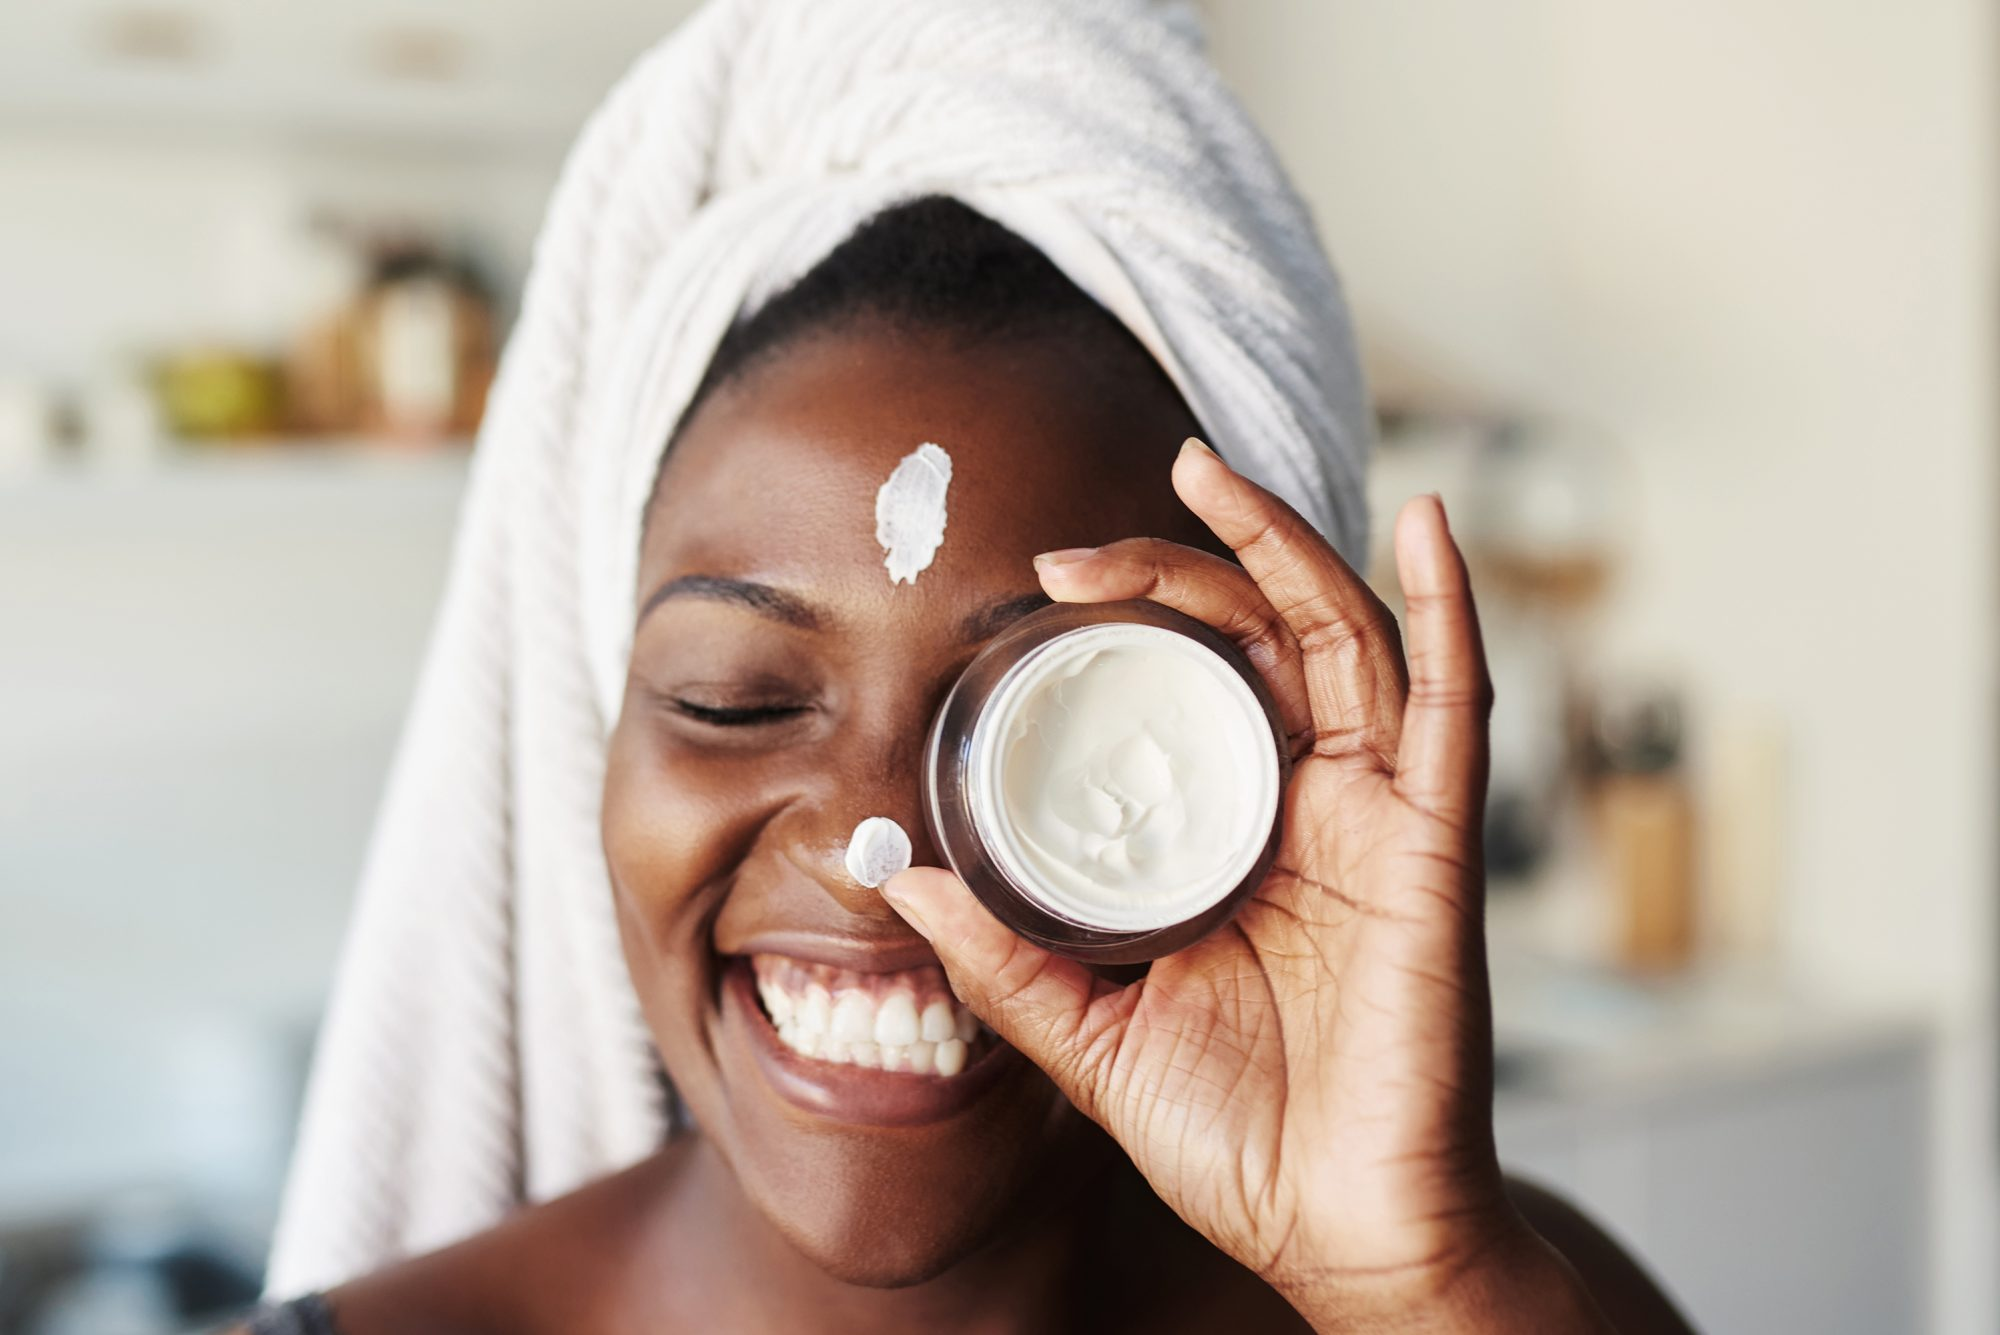 woman smiling with jar of skin cream